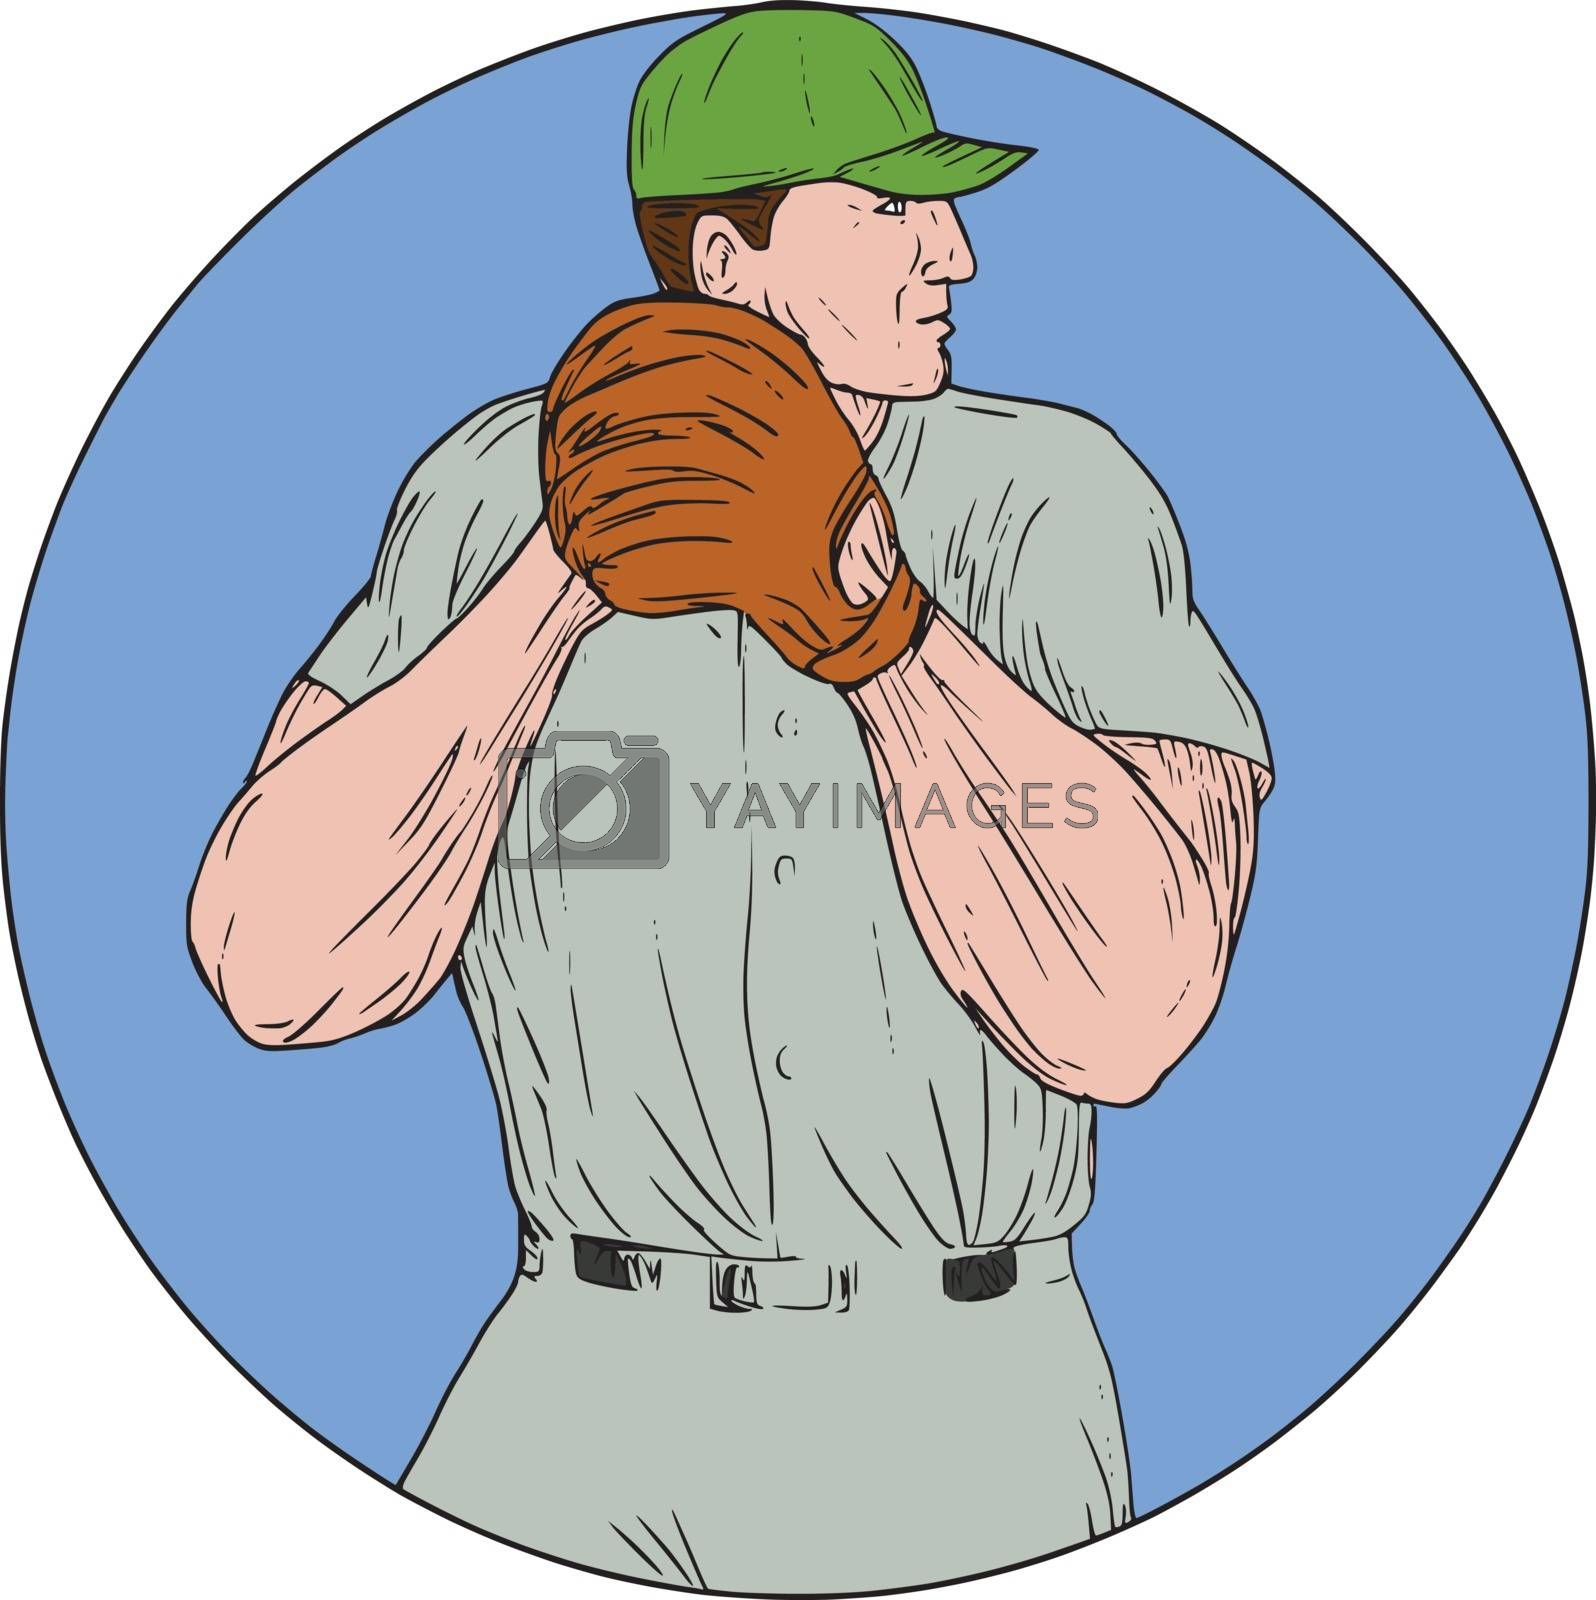 Drawing sketch style illustration of an american baseball player pitcher outfilelder getting started to throw ball viewed from the side set inside circle on isolated background.